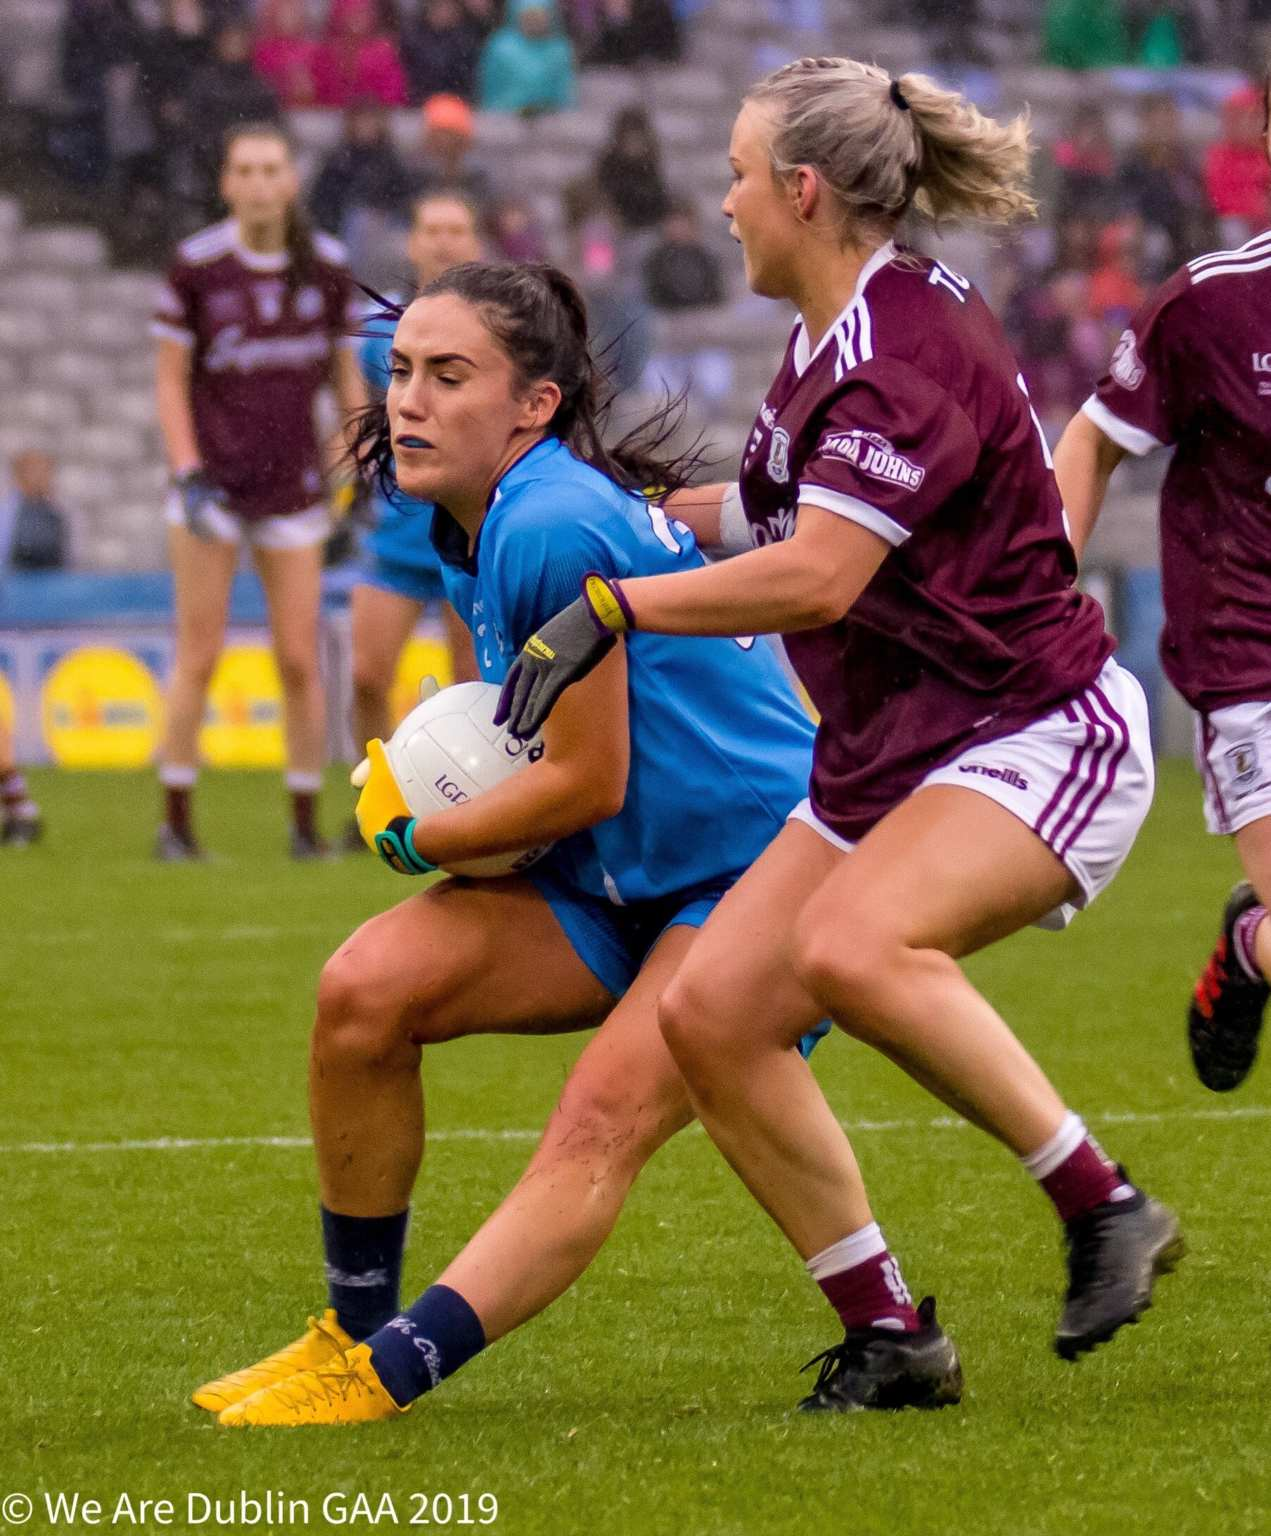 A Dublin Player is tackled by a Galway player both sides meet in the Lidl Ladies National Football League Round 4 at the weekend